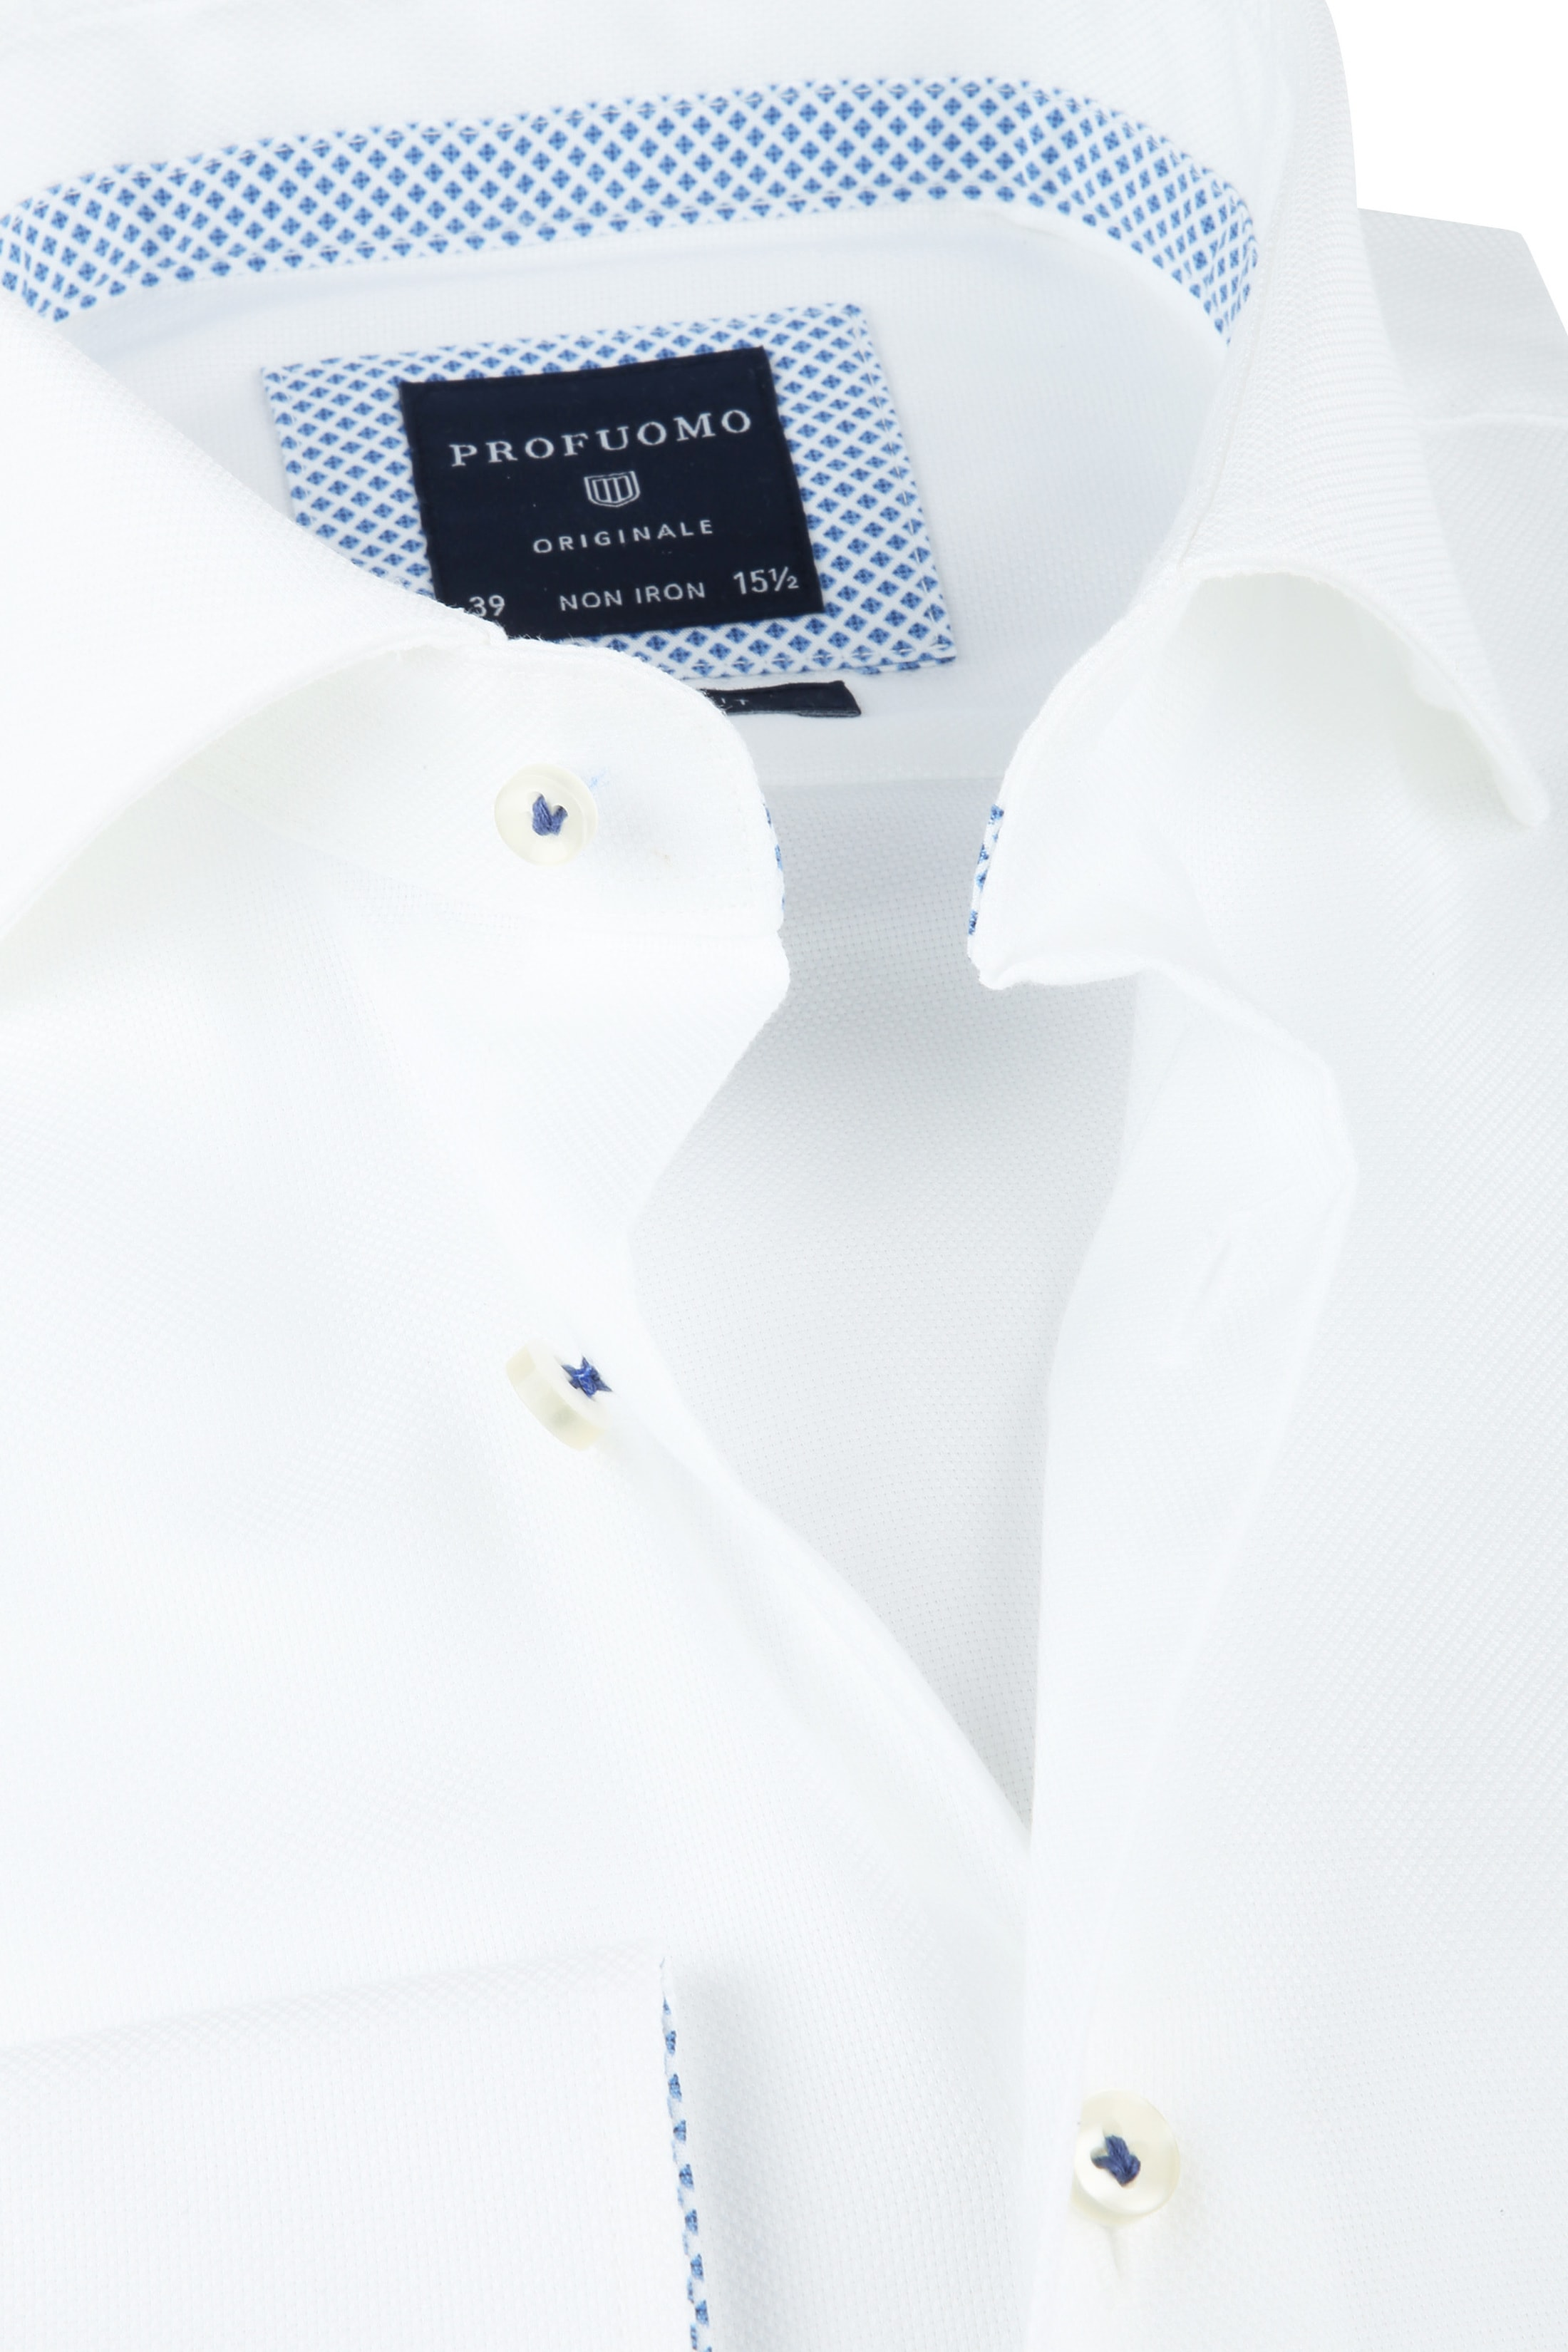 Profuomo SF Overhemd Woven Wit foto 1